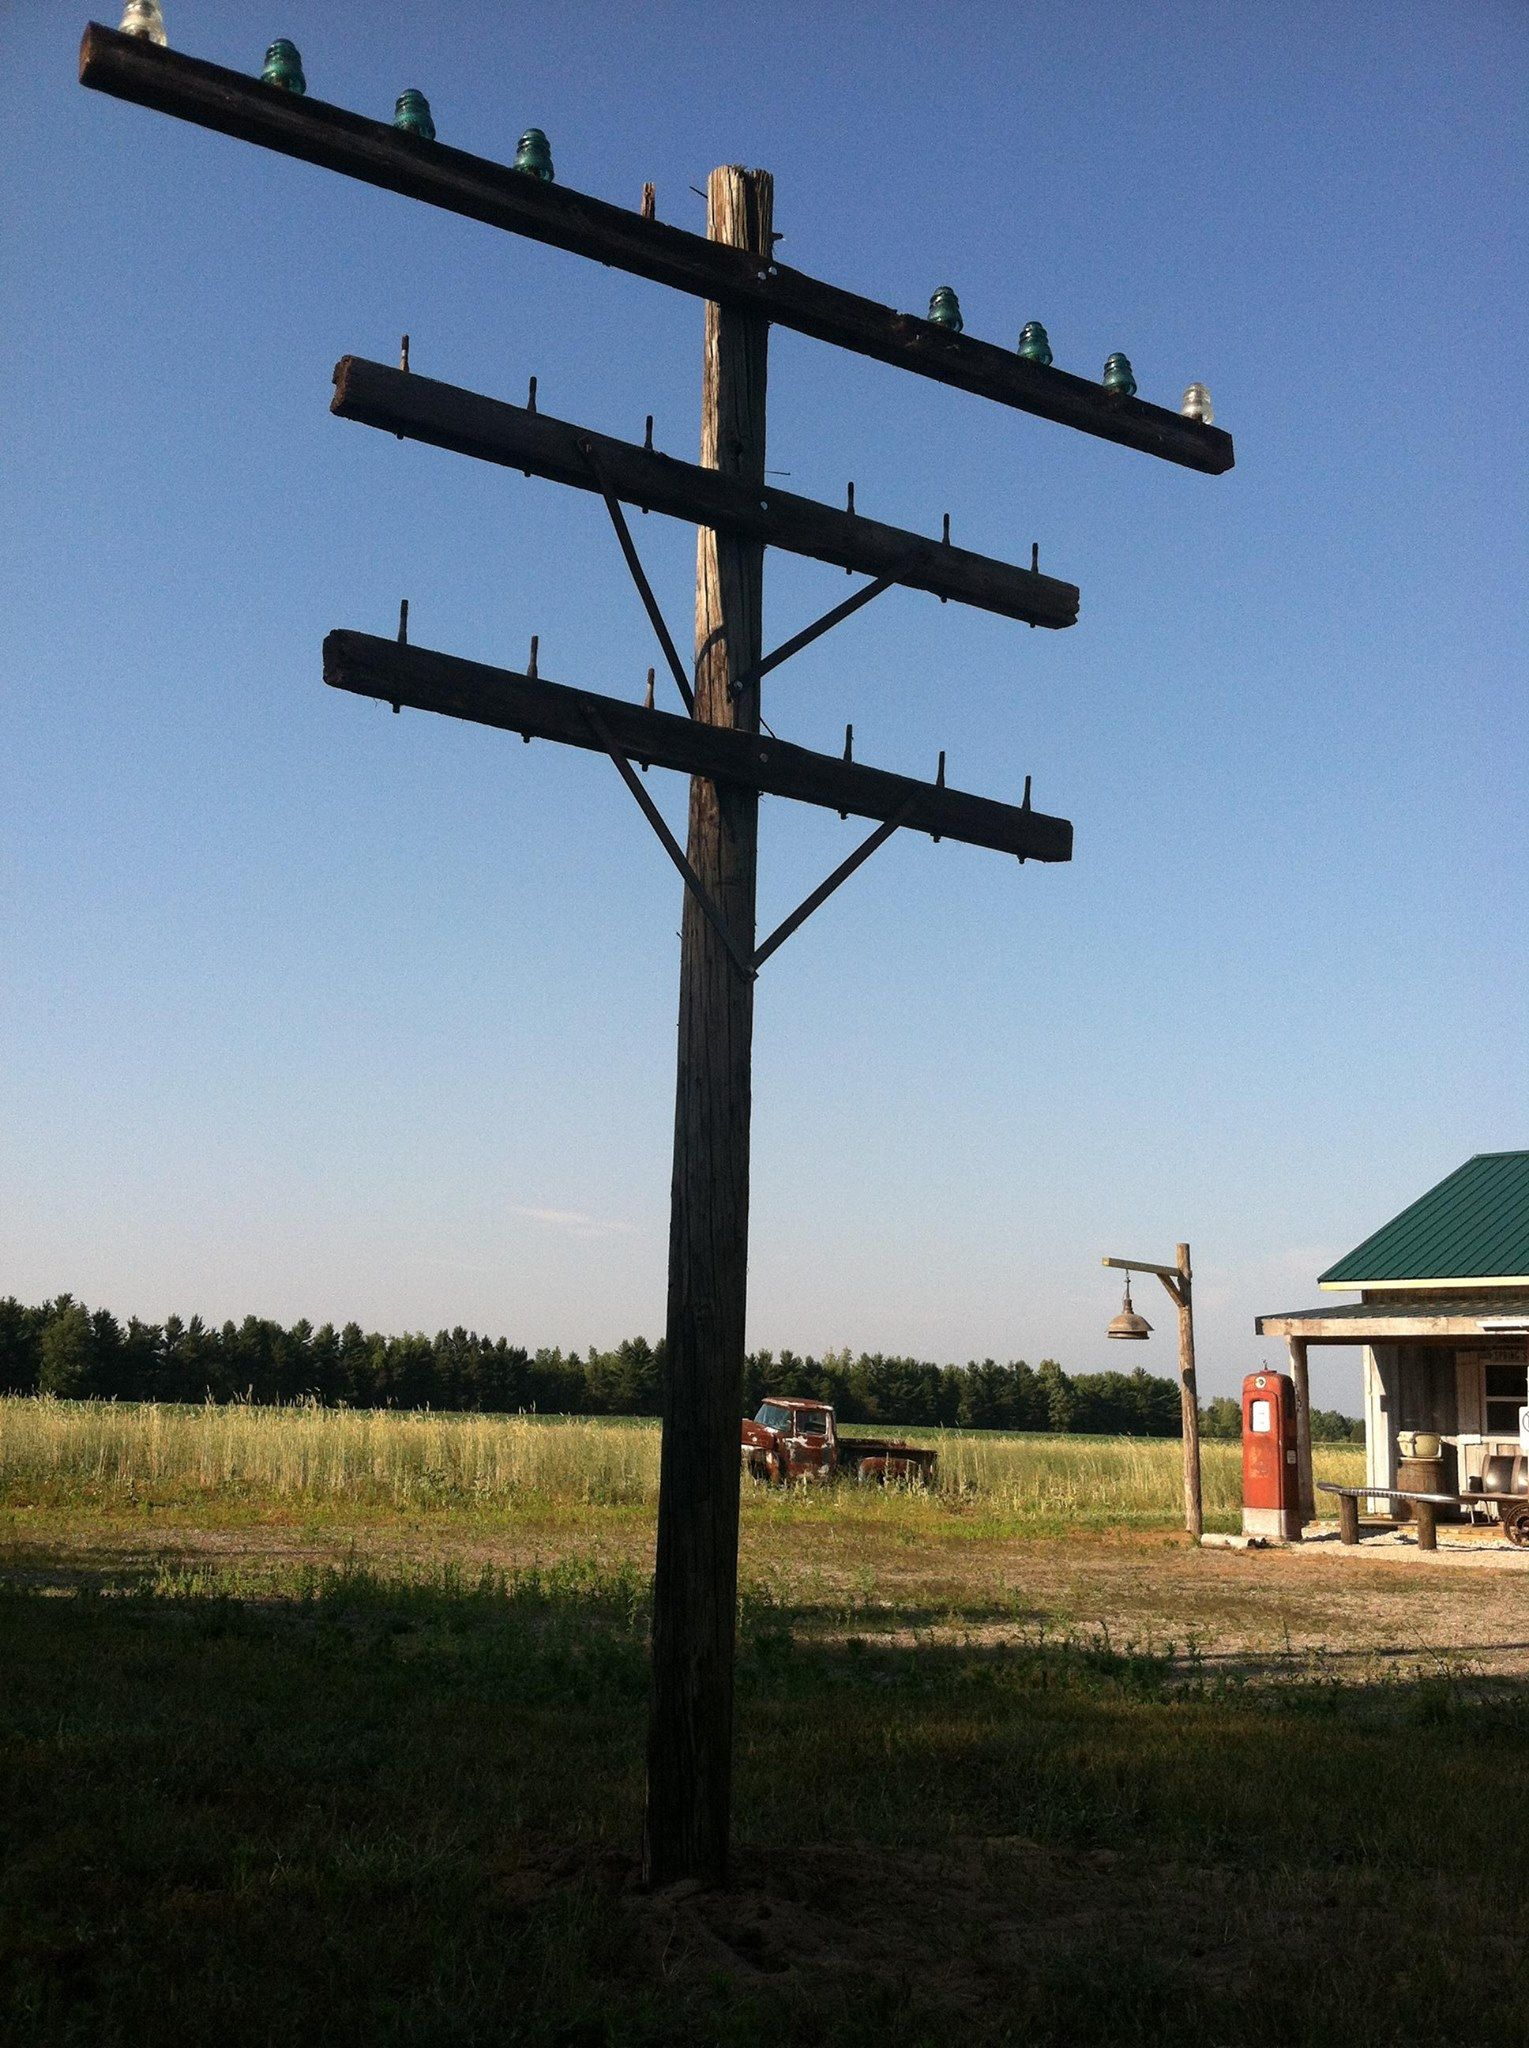 Old Telephone Pole And Wires - Trusted Wiring Diagram